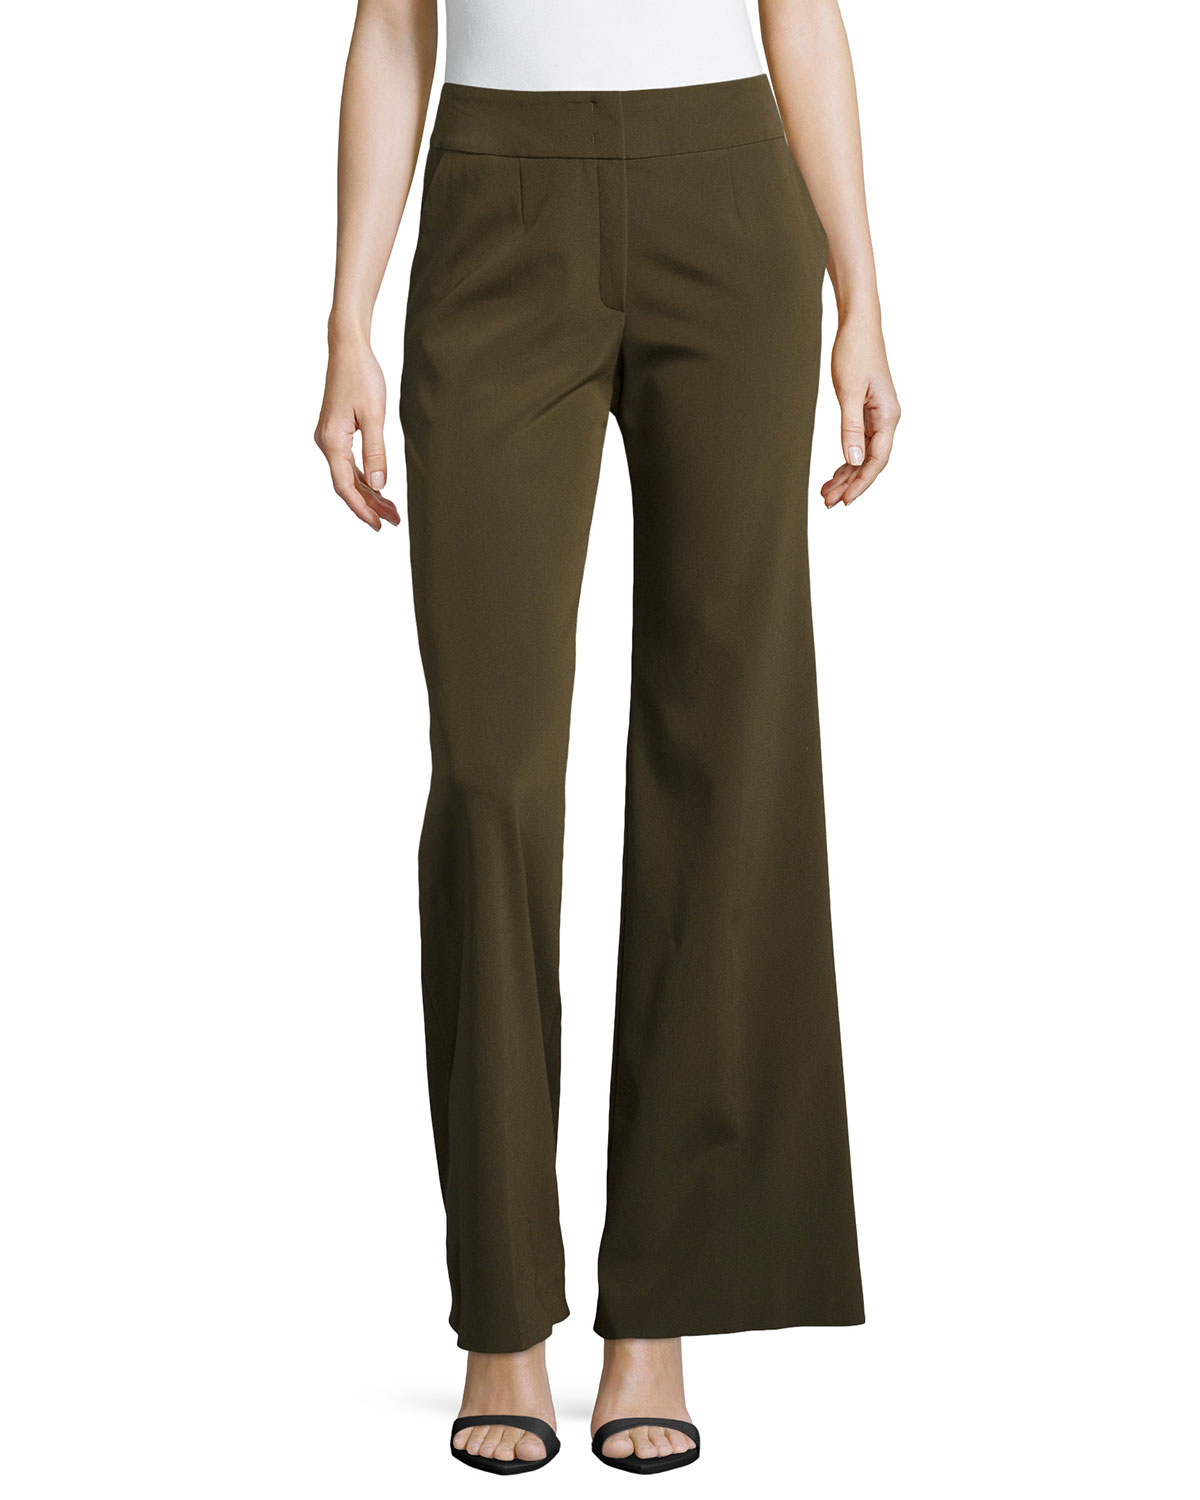 Free shipping on trouser & wide-leg pants for women at needloanbadcredit.cf Shop for wide-leg pants & trousers in the latest colors & prints from top brands like Topshop, needloanbadcredit.cf, NYDJ, Vince Camuto & more. Enjoy free shipping & returns.